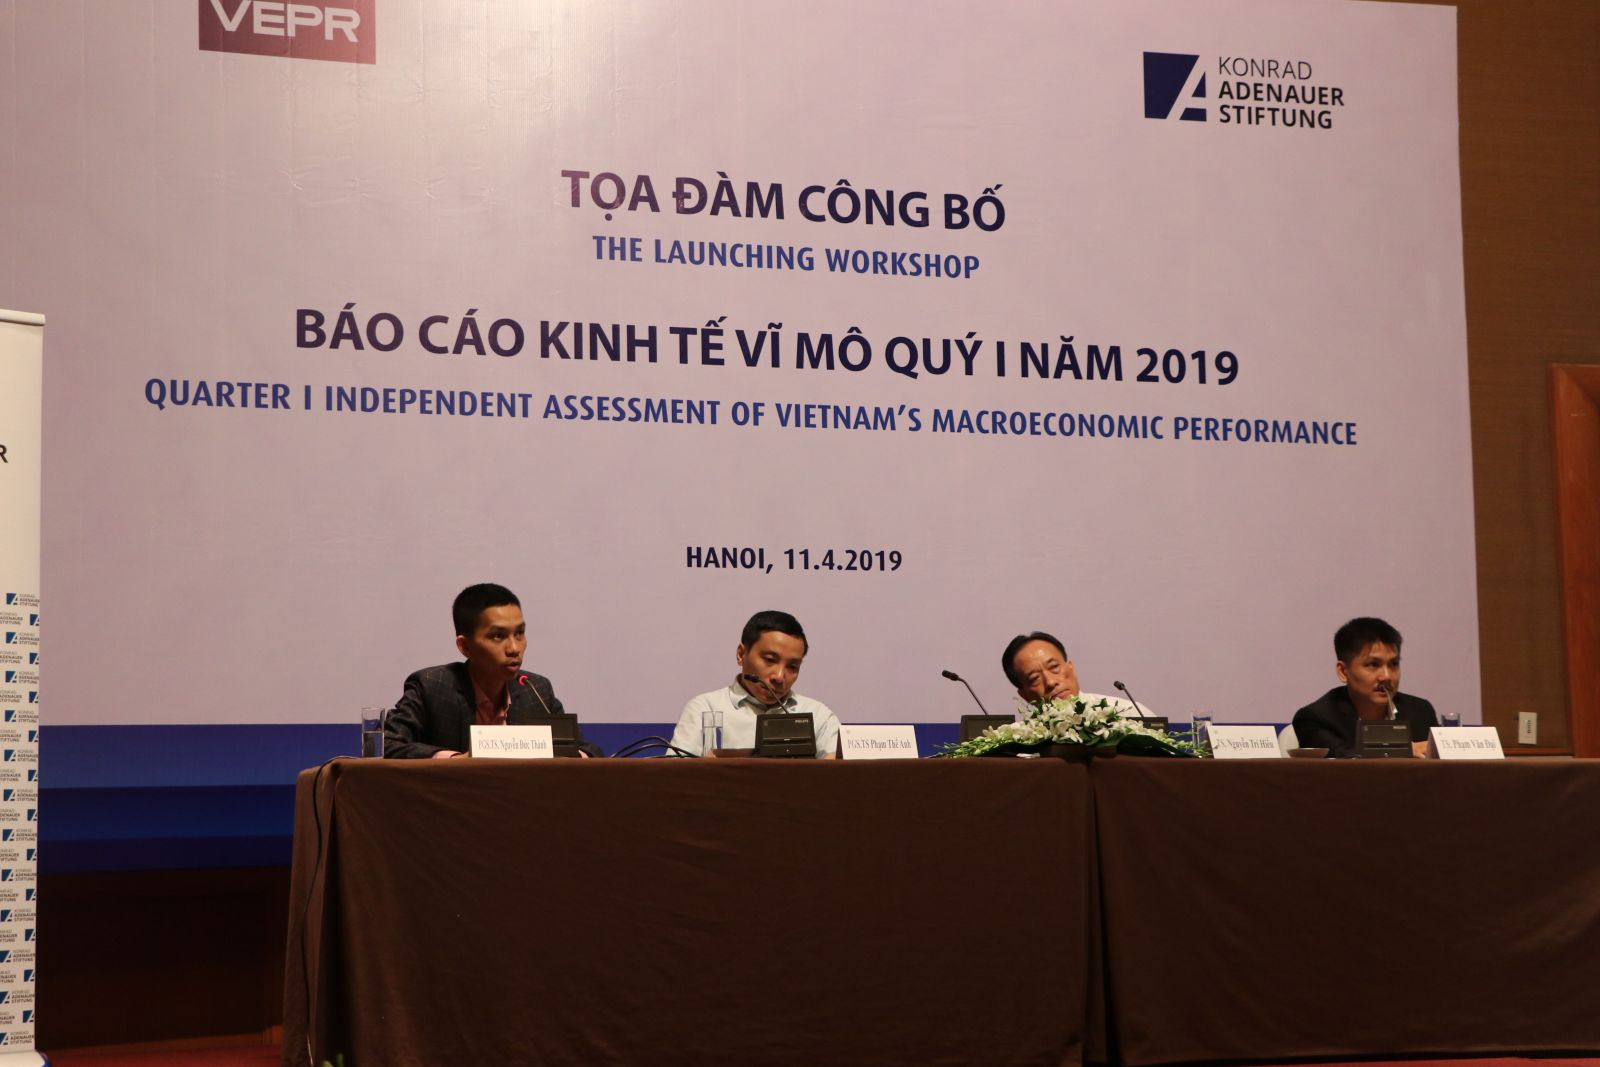 The Launching Workshop: Quater I Independent Assessment of Vietnam's Macroeconomic Performance